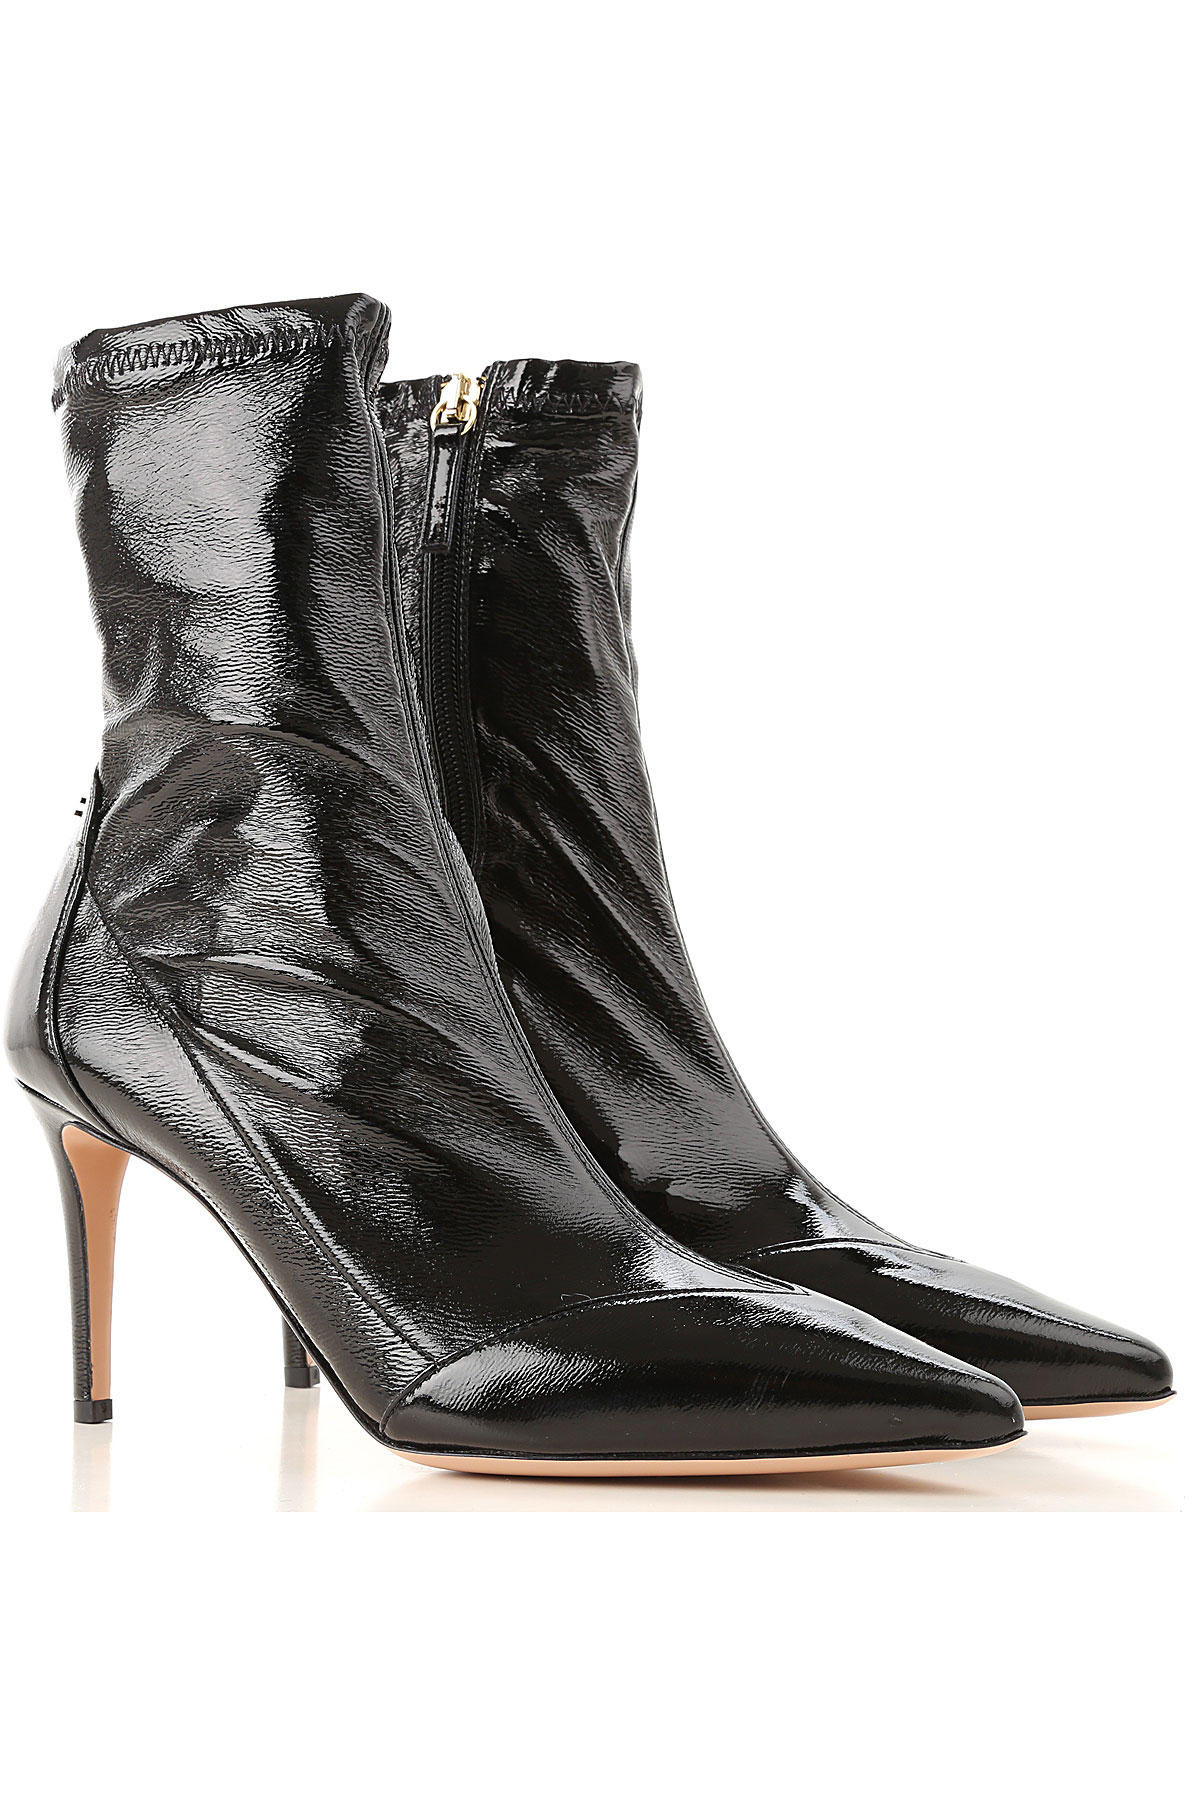 Image of Elisabetta Franchi Boots for Women, Booties, Black, Patent, 2017, 10 6 7 8 9